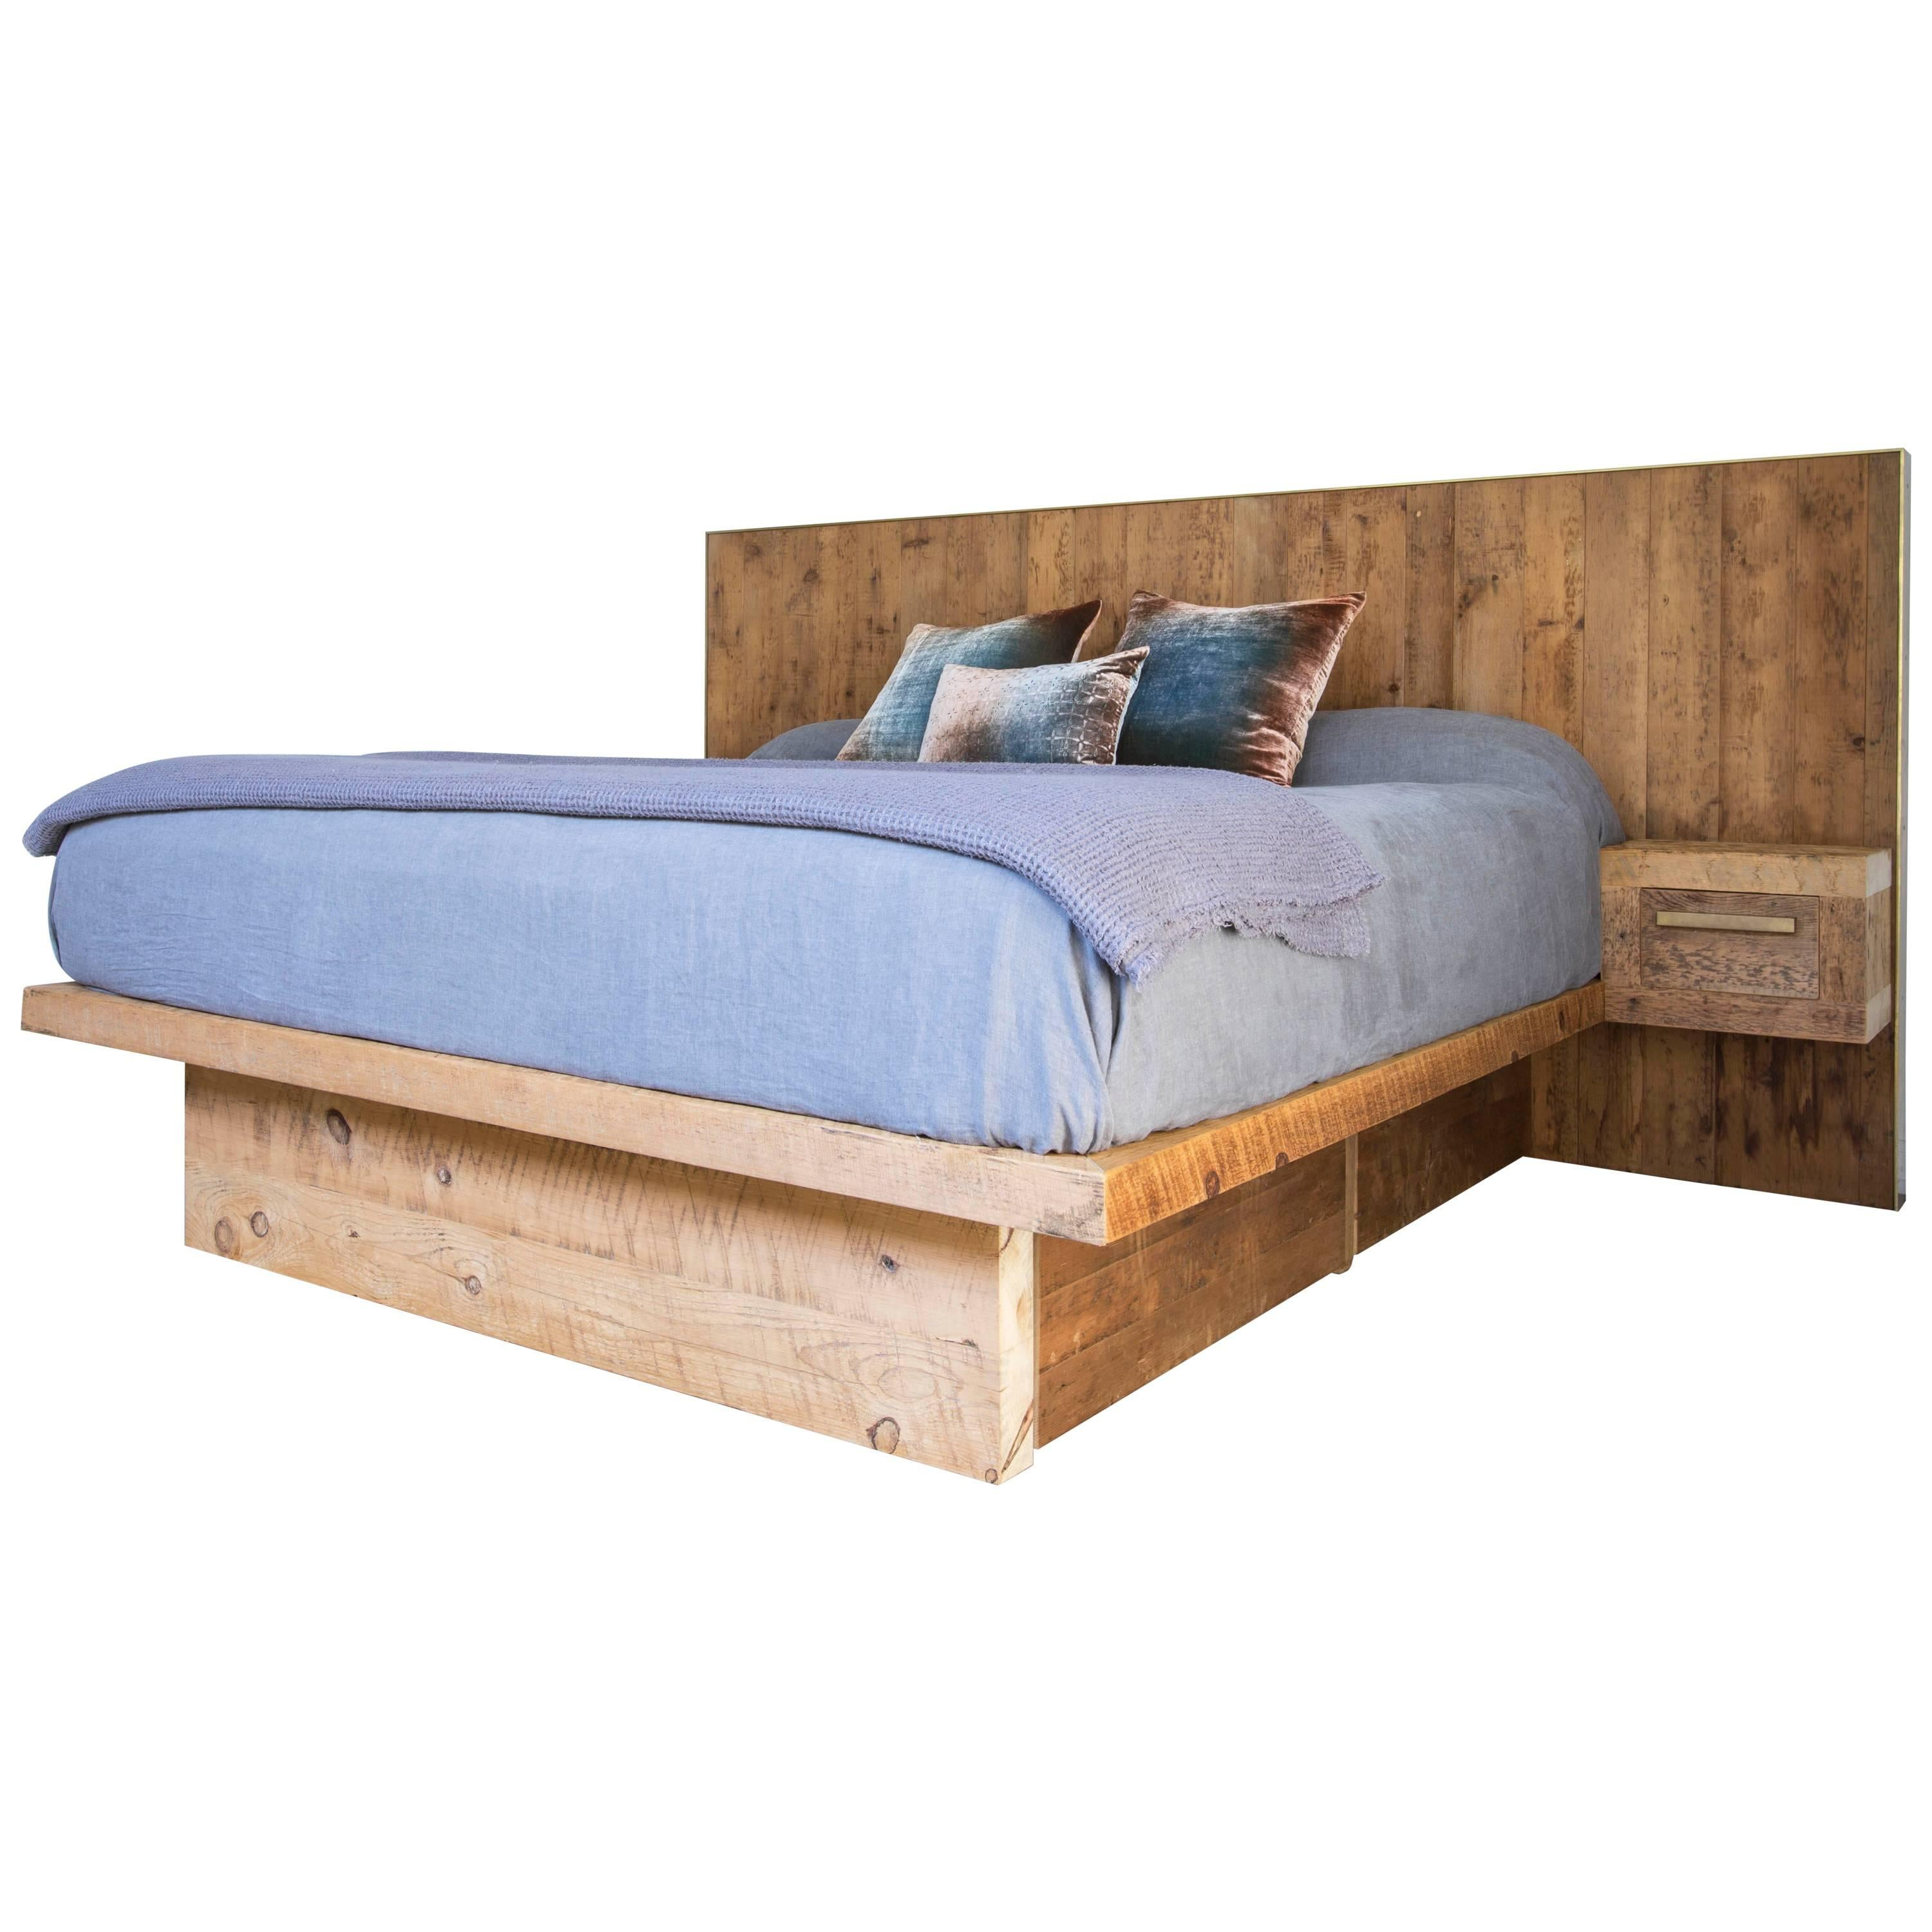 Amuneal's Barn Bed